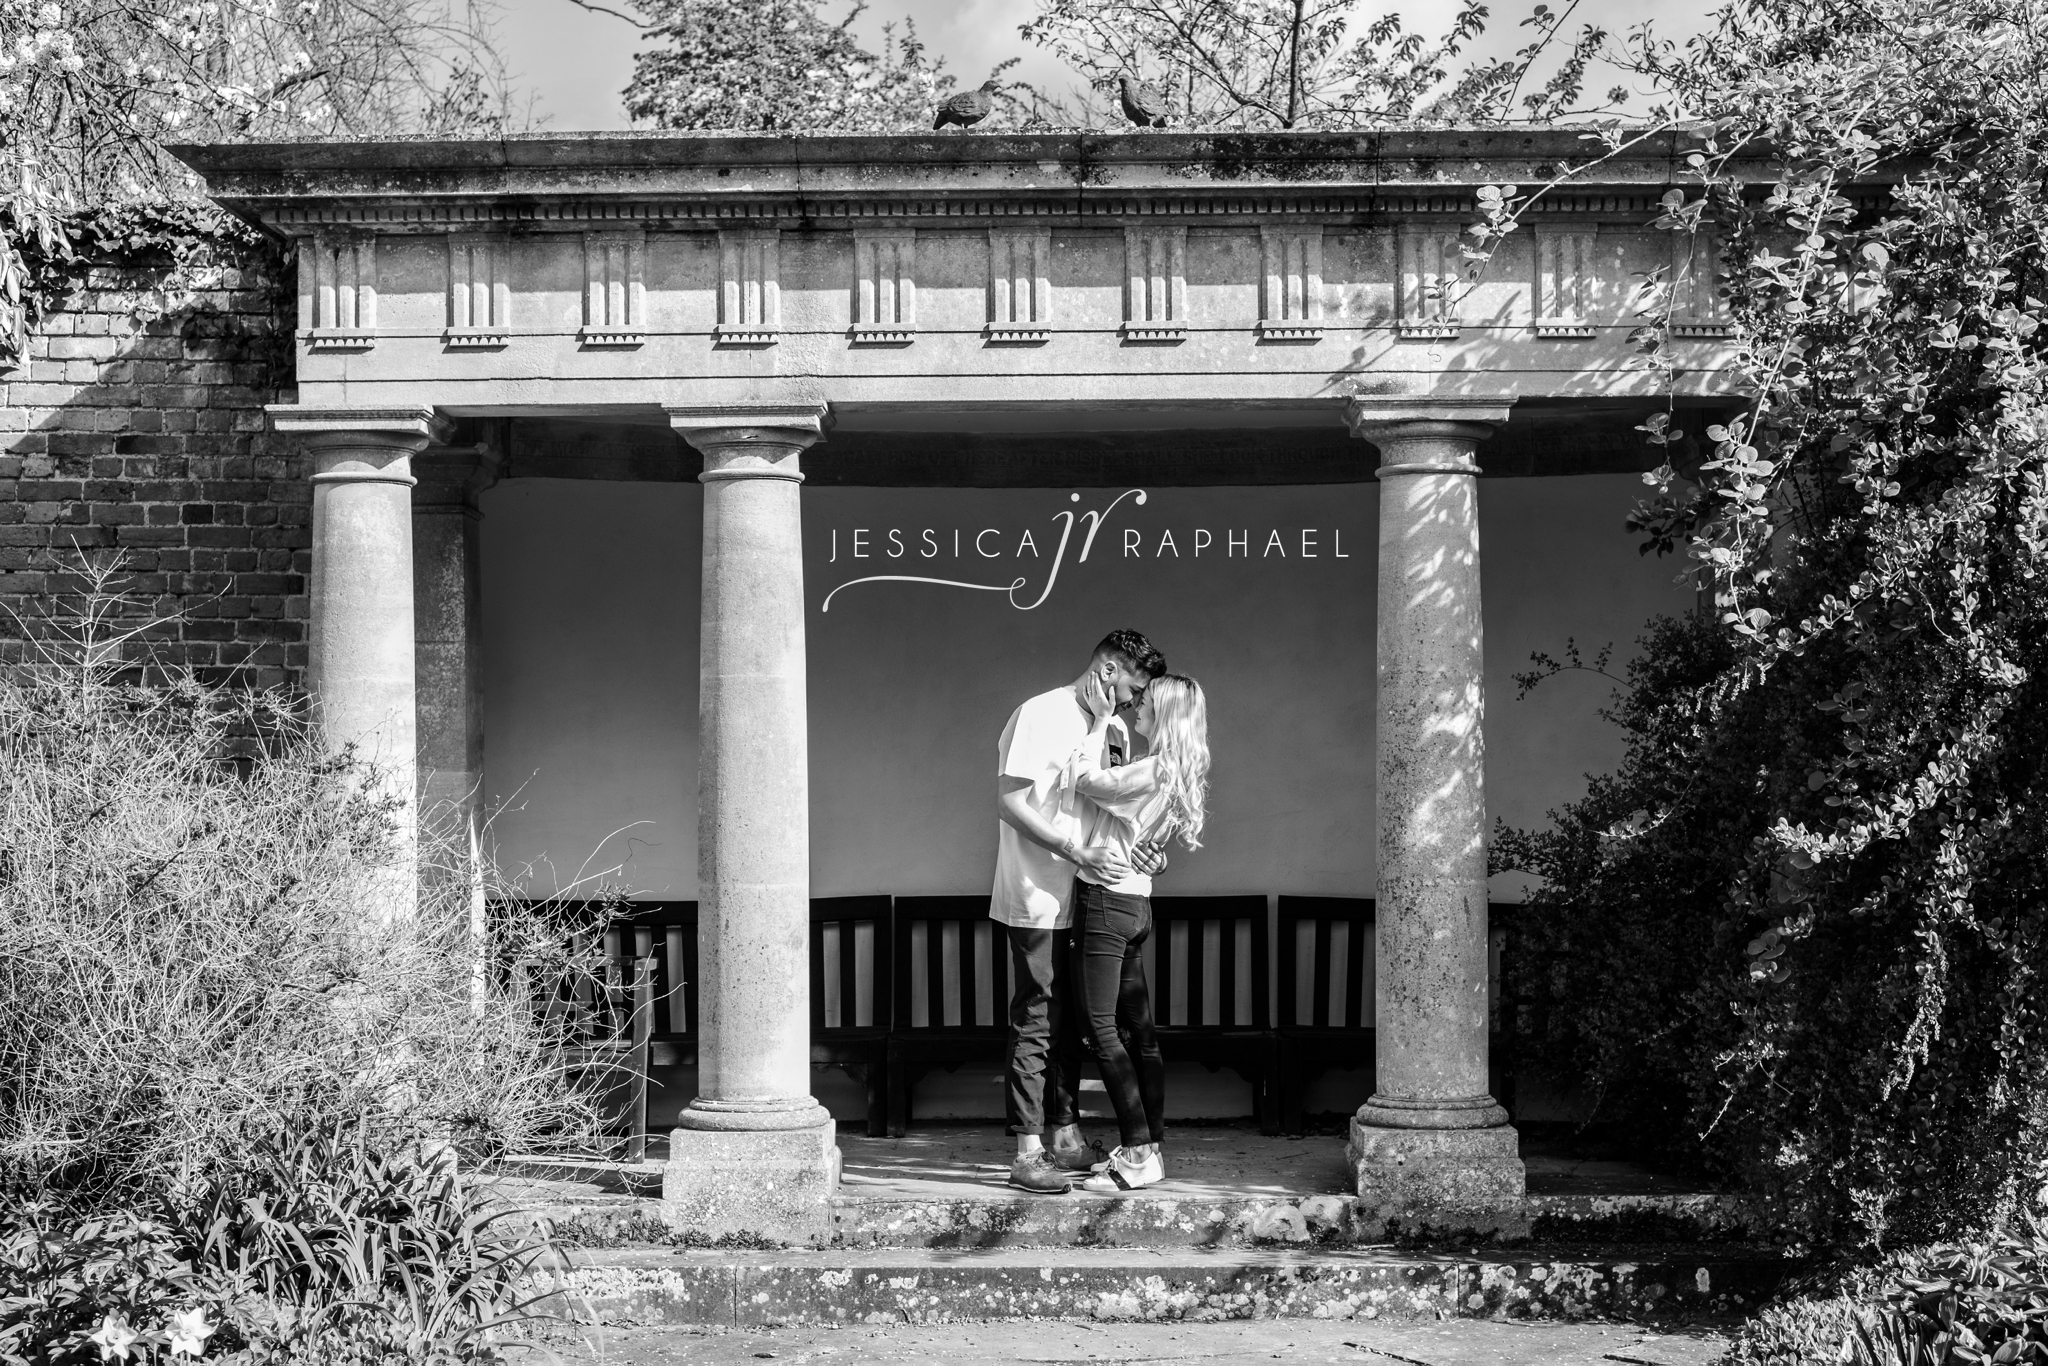 engagement-photography-spring-jessica-raphael-photography-spetchley-park-gardens